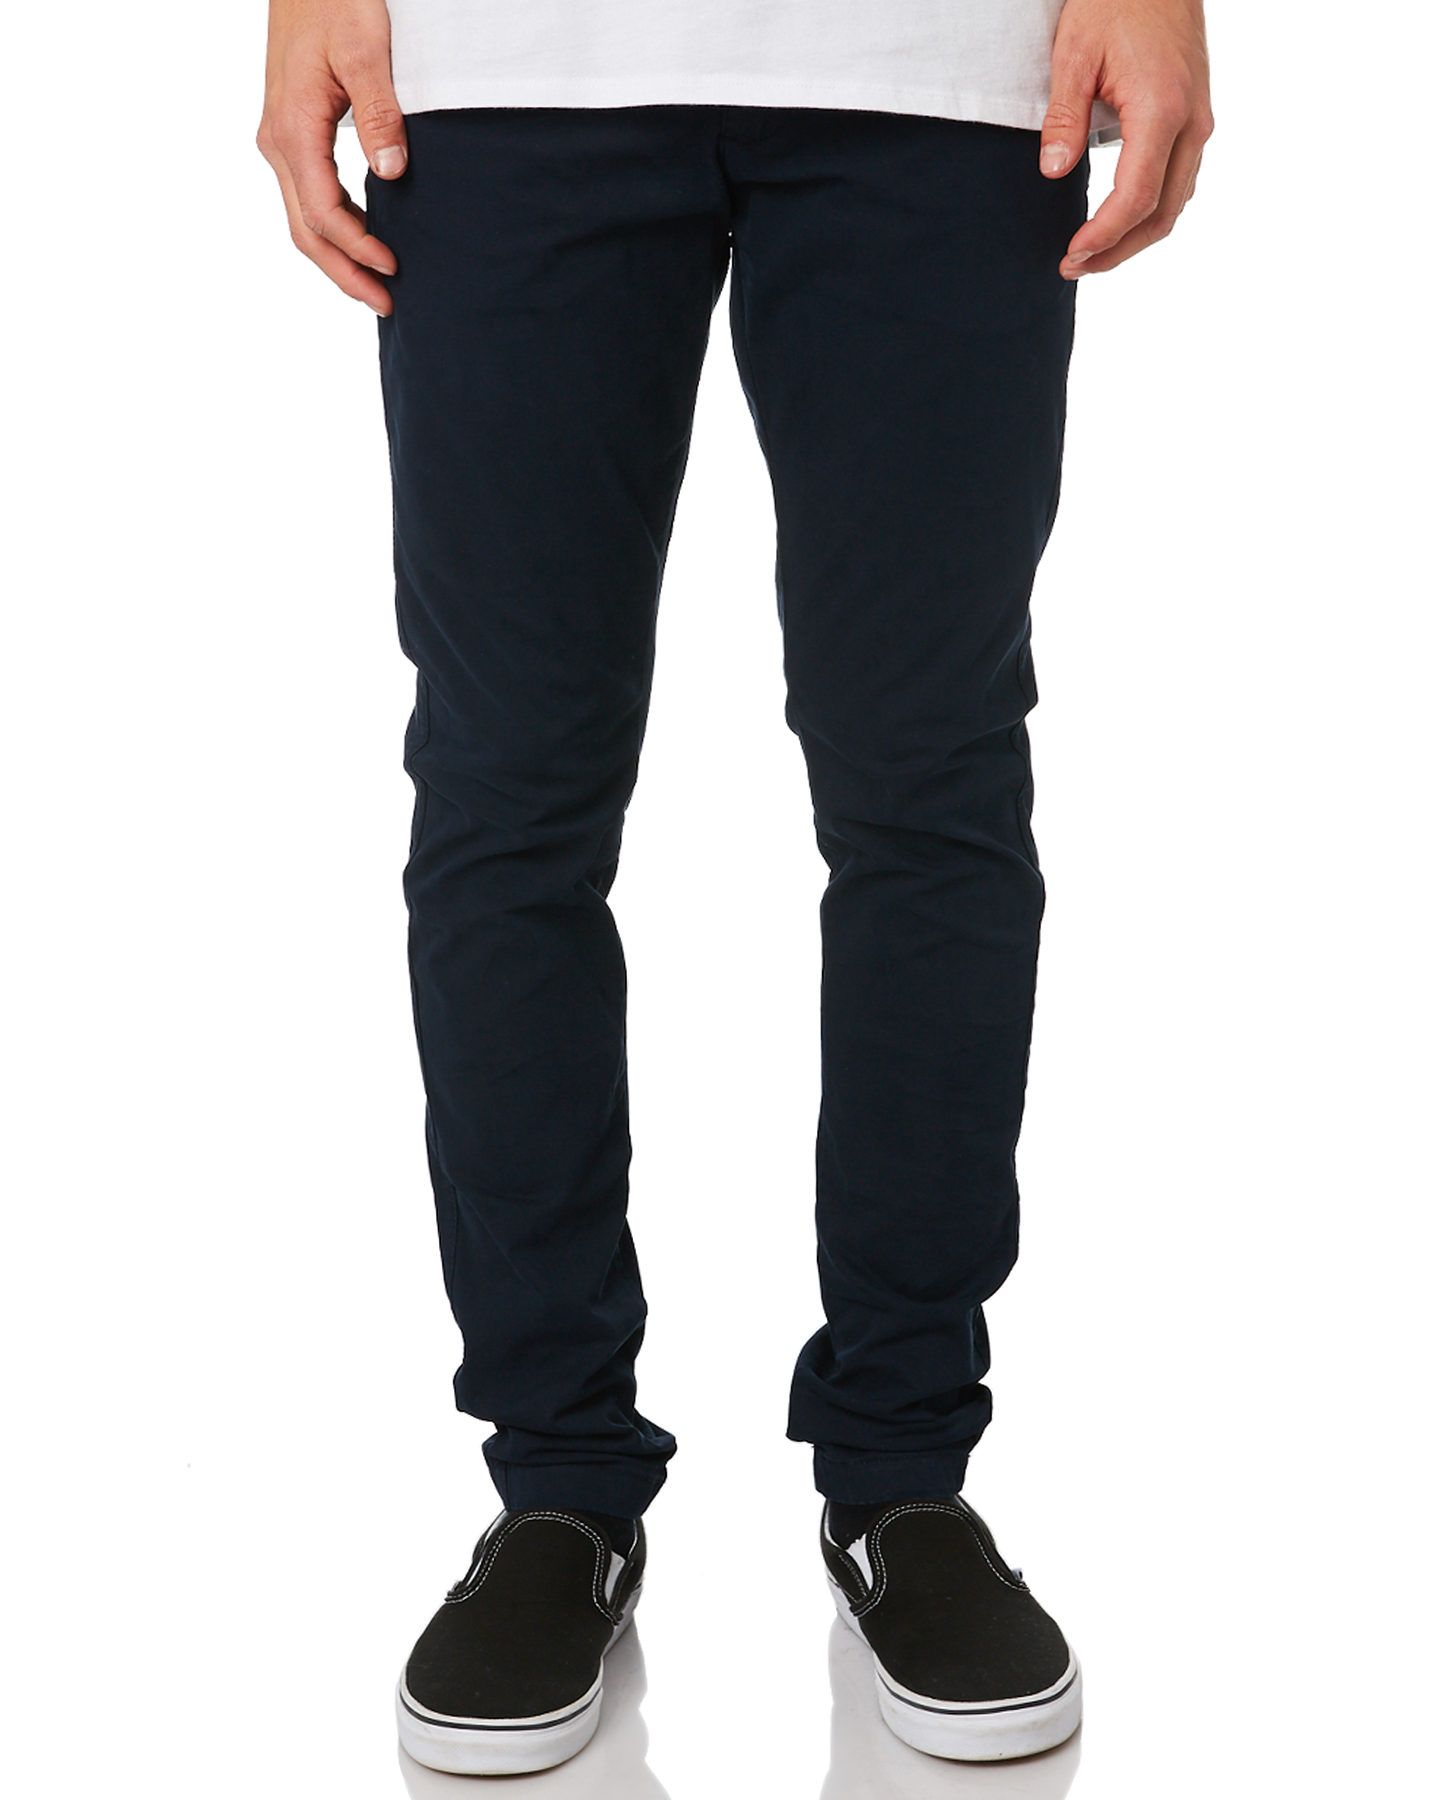 Mens Heywood Chino Trousers Dr. Denim Top Quality Sale Online mPLbHHg26